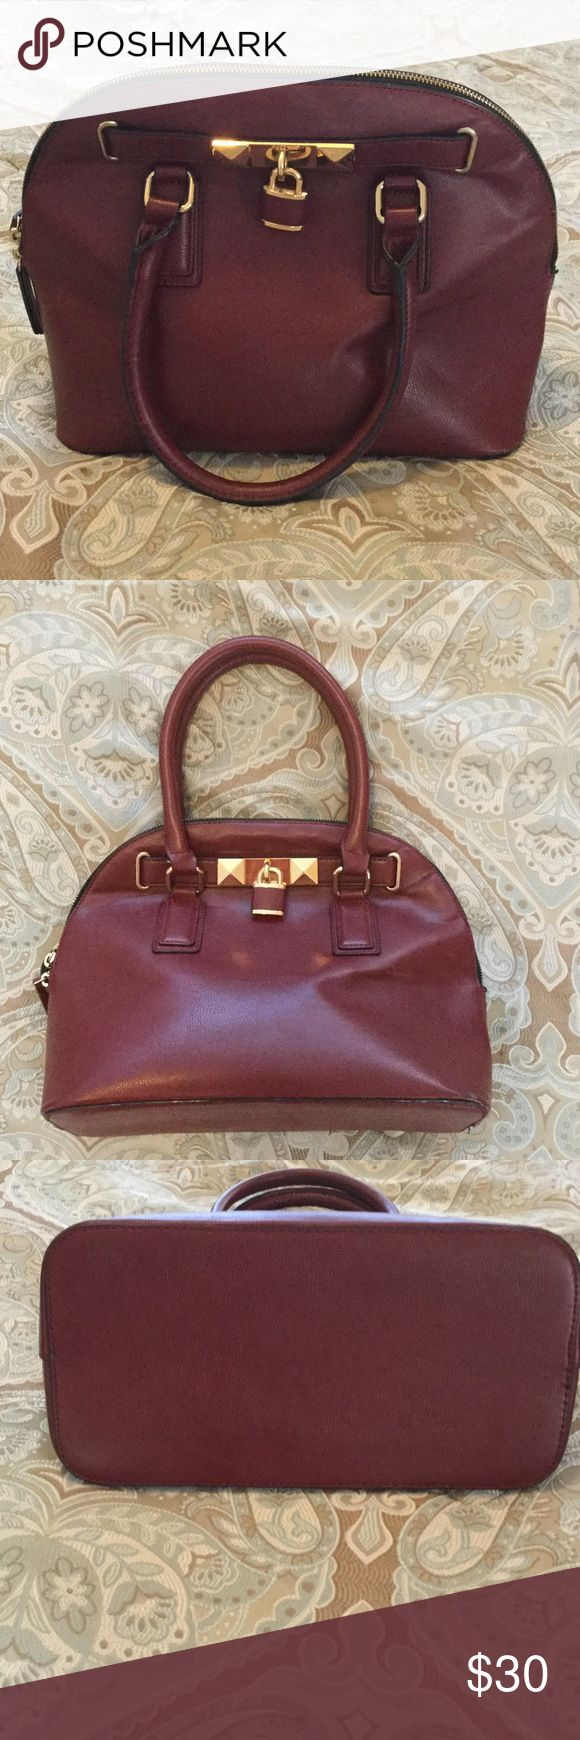 Burgundy Aldo purse Gold accents on the purse. Two handle purse that zips up.....One zip up pocket medium size and the other side inside the purse are 2 pockets. Black lining. The pockets are accented with the burgundy color. Gently worn purse . I believe you would consider this a satchel type purse. Aldo Bags Satchels